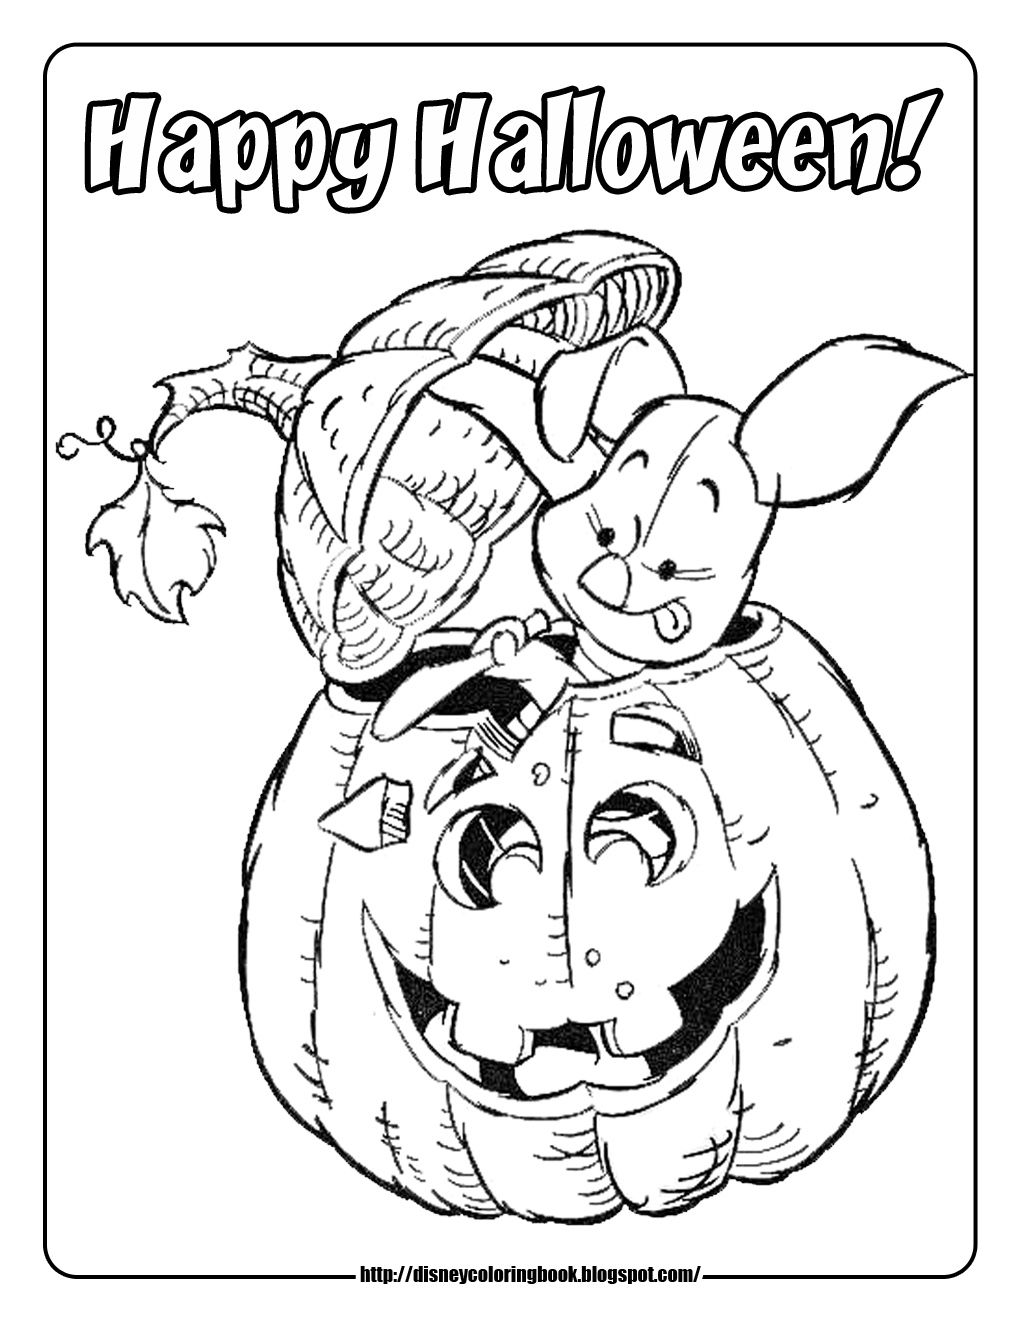 Halloween coloring pages Piglet carving pumpkin | Halloween color ...